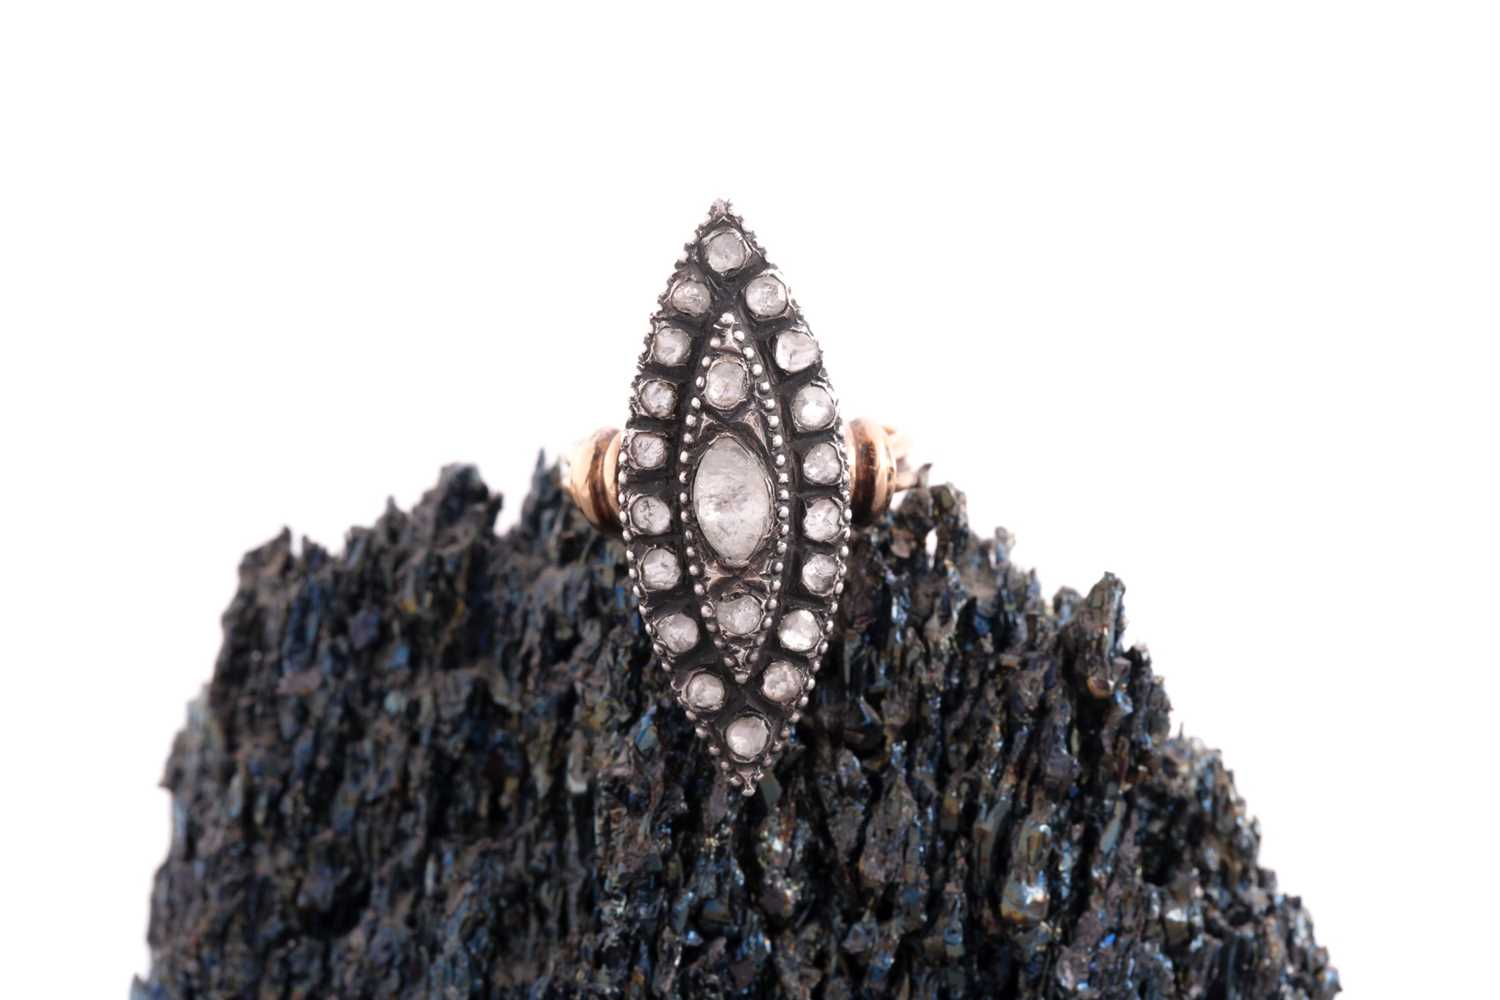 A rose-cut diamond ring, in the 19th century style, the silver marquise-shaped mount inset with